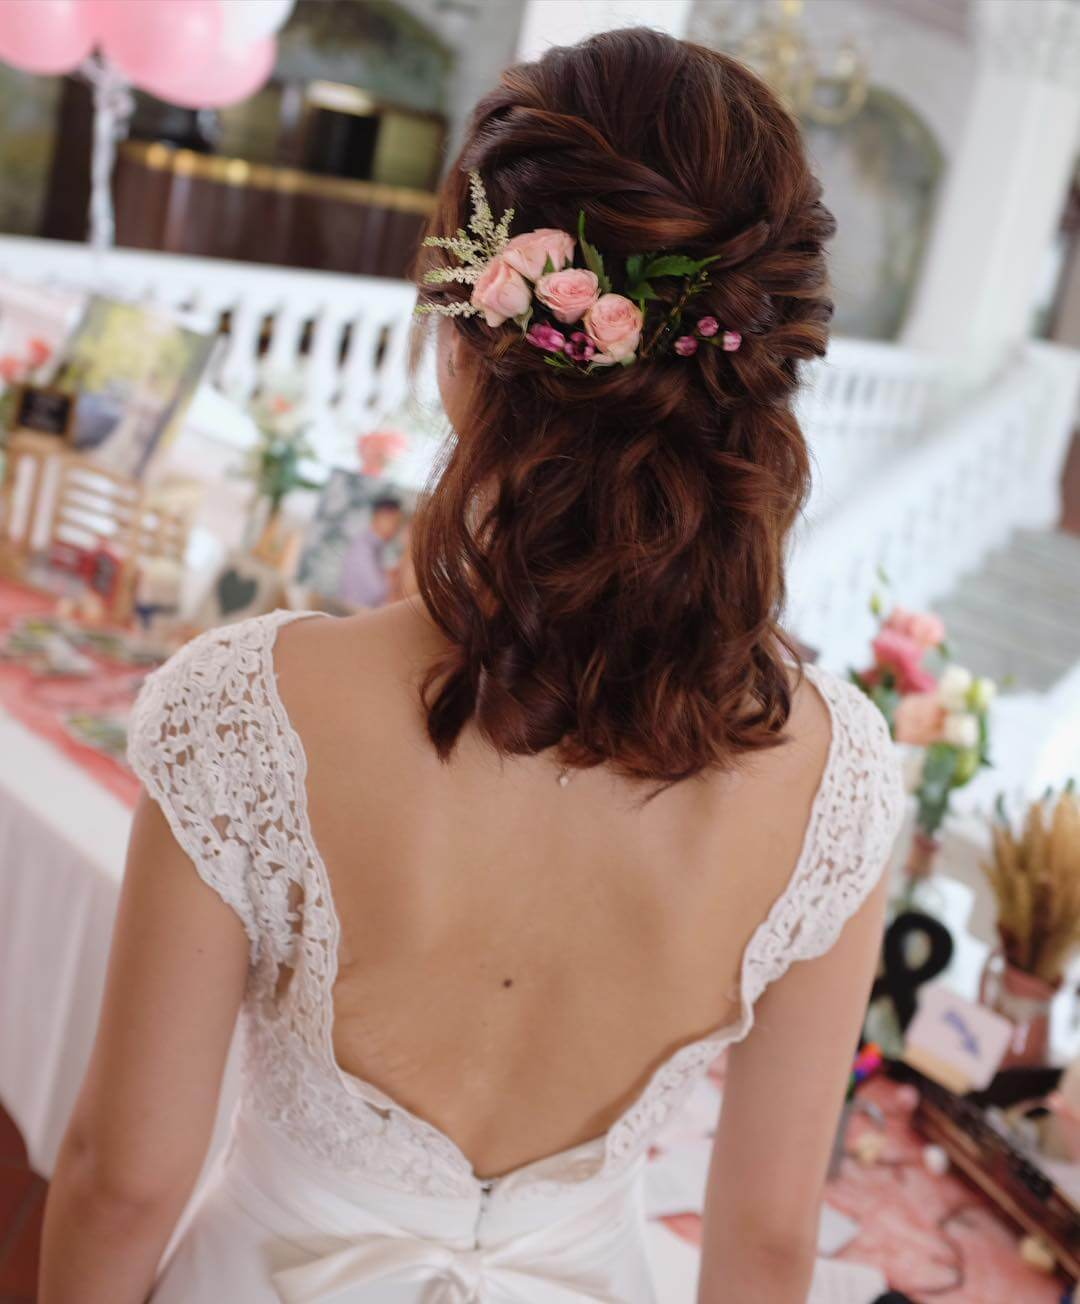 25+ Curly Wedding Hairstyle Ideas, Designs